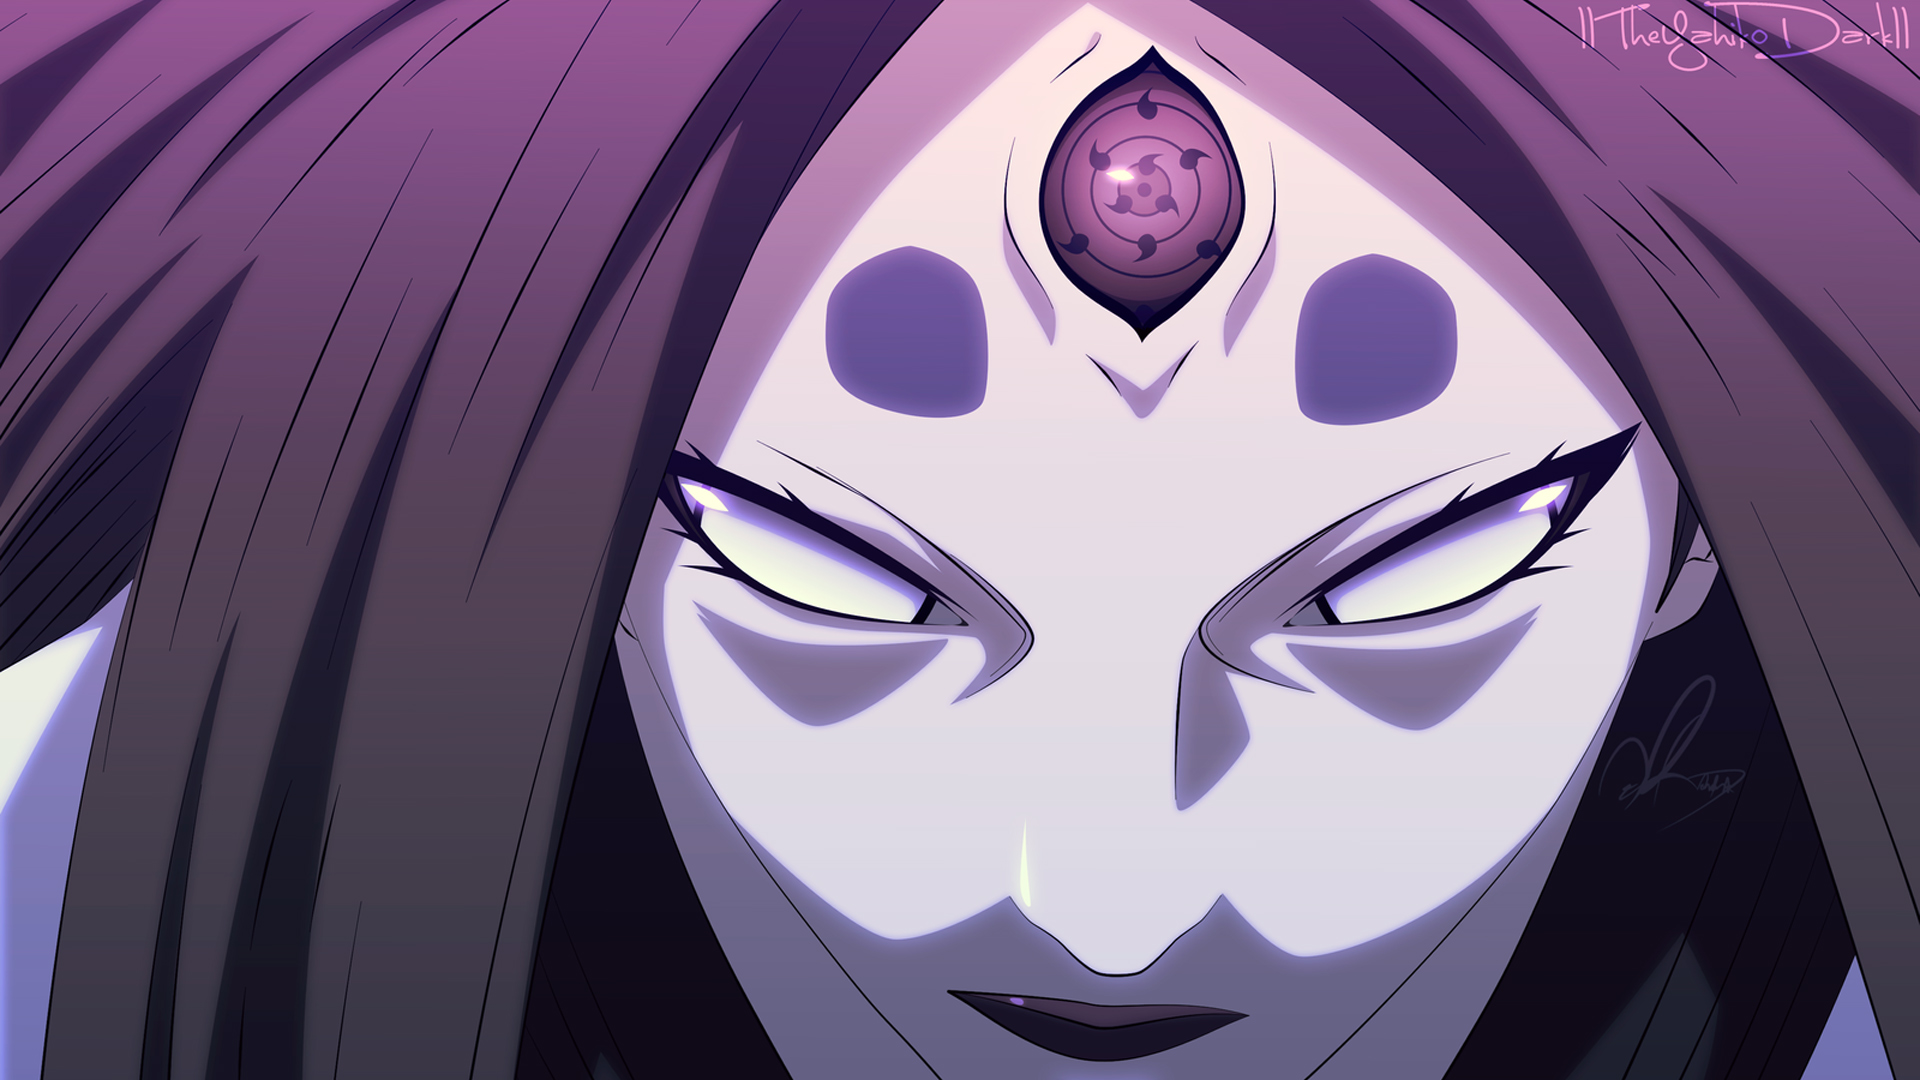 Kaguya eyes wallpaper hd - Rinnegan wallpaper hd ...